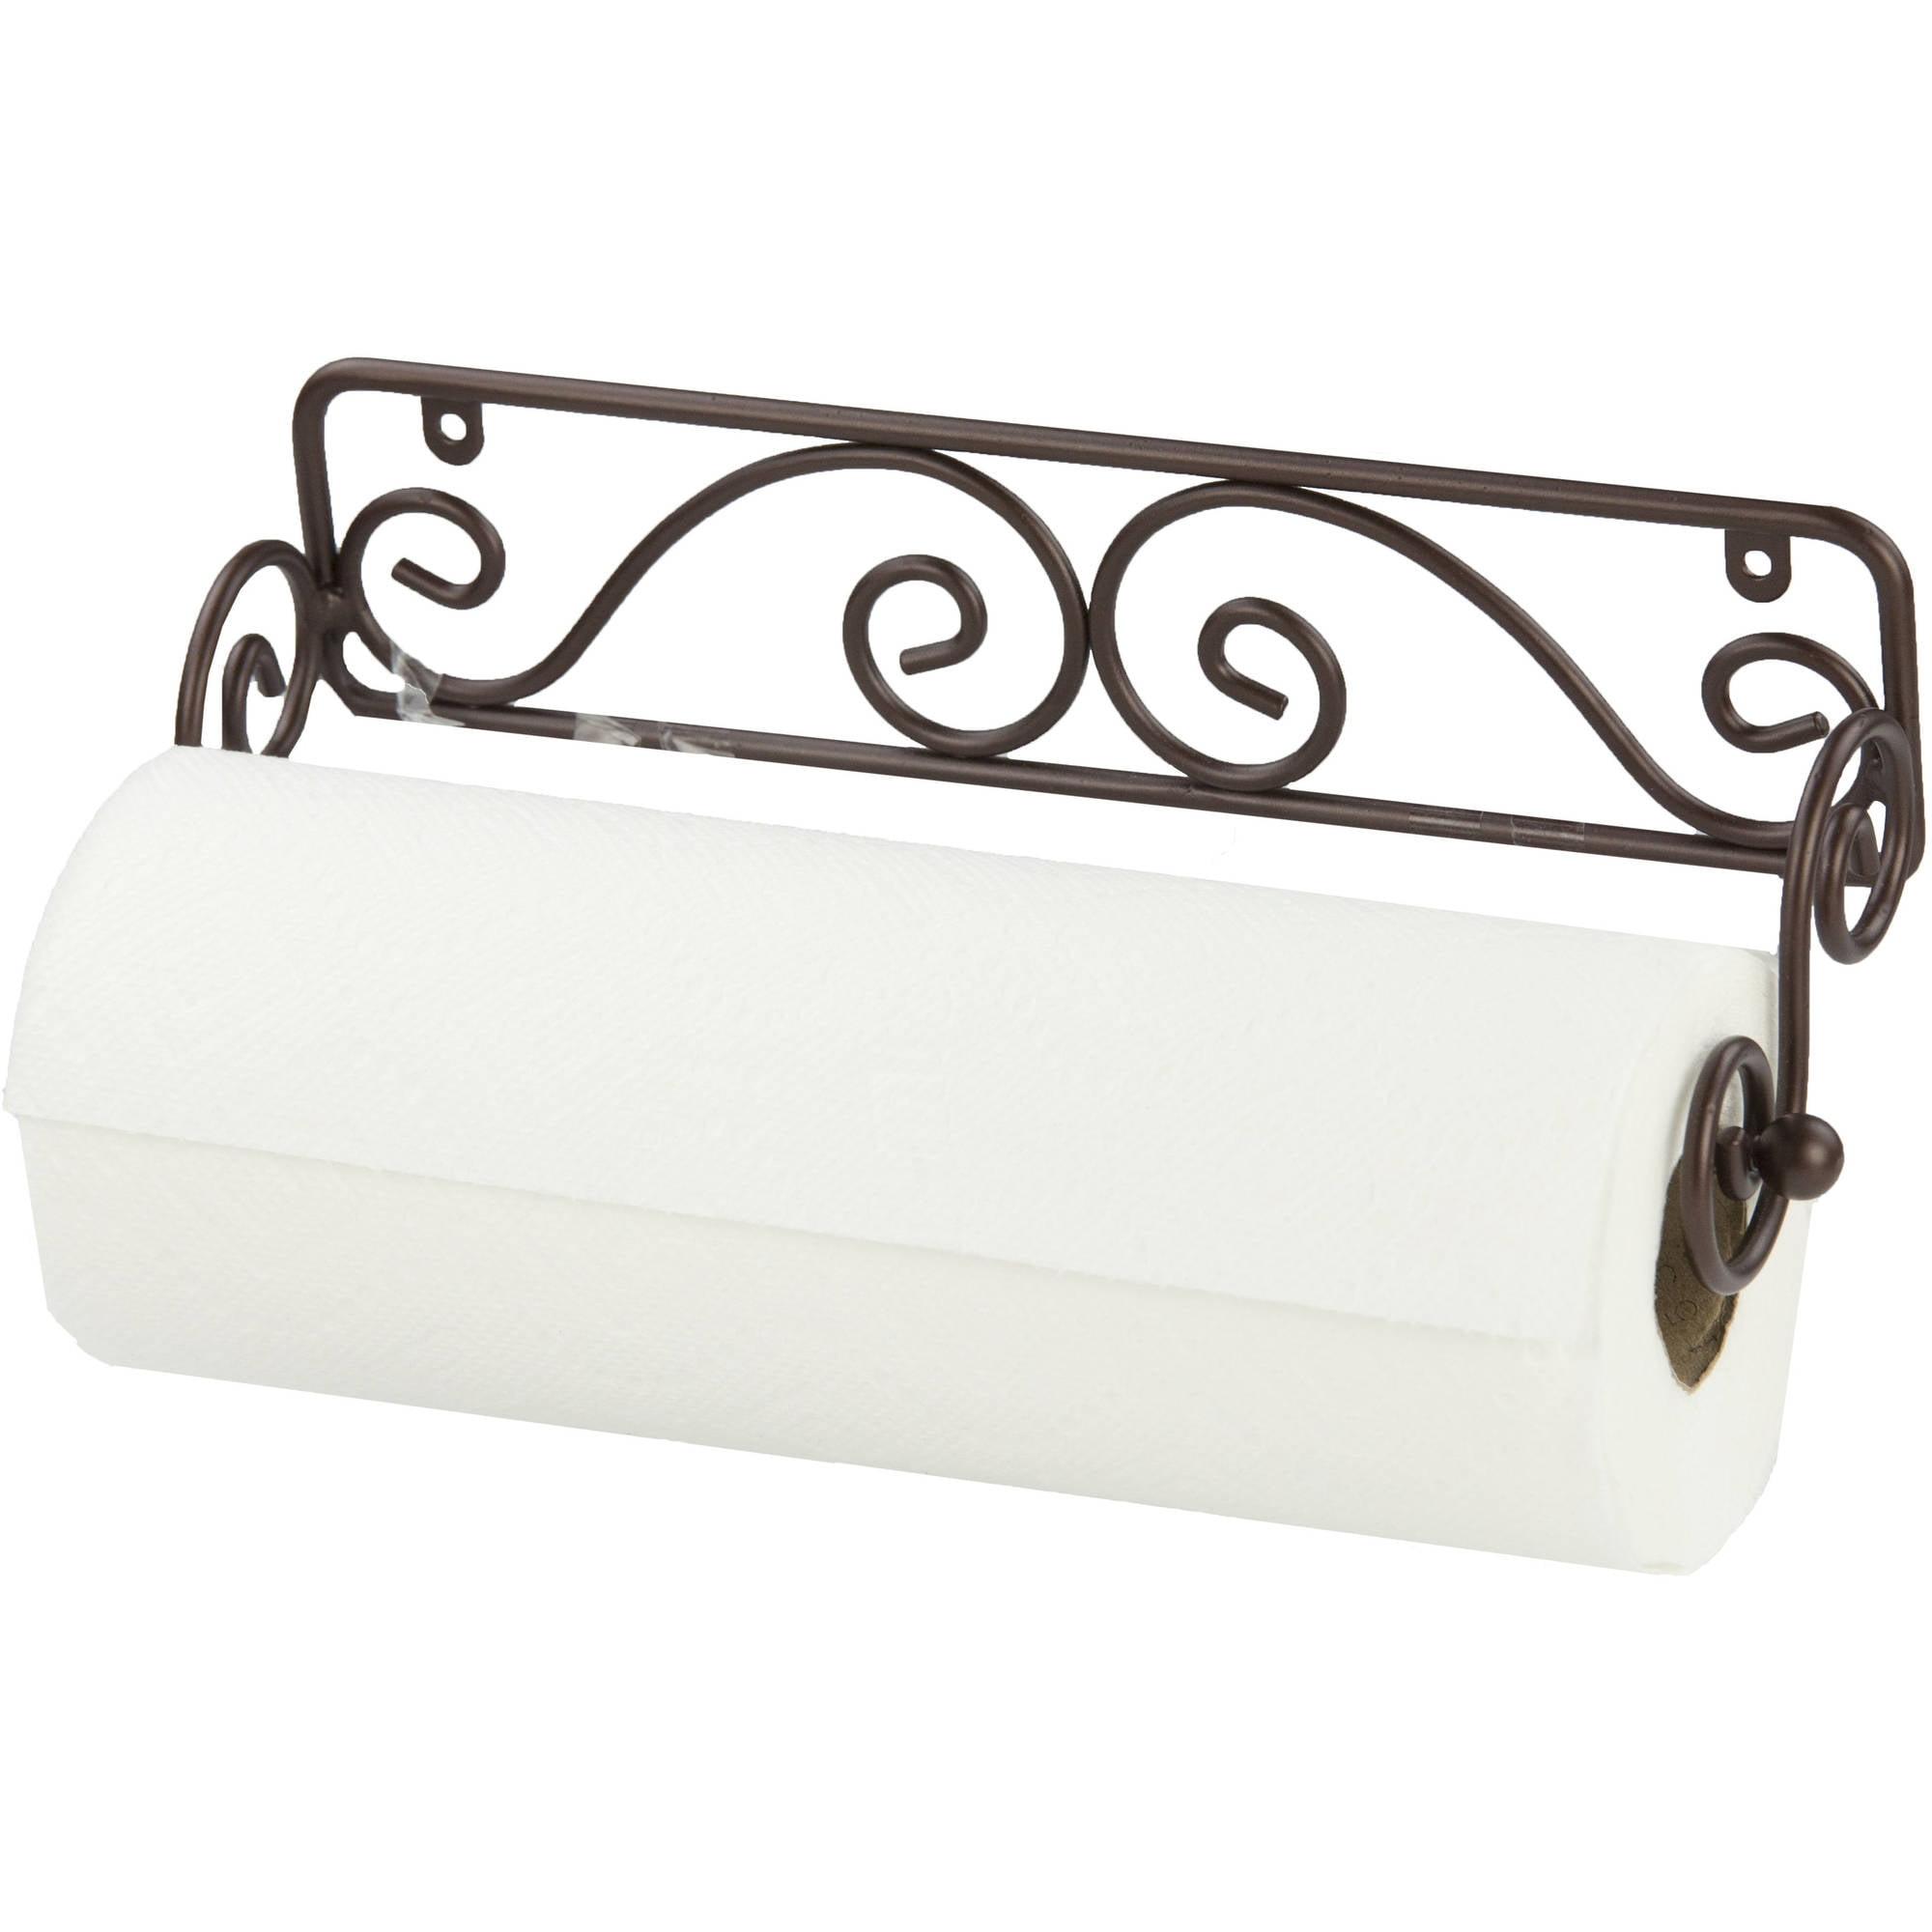 Wall Mount Paper Towel Holder home basics scroll collection steel wall mounted paper towel